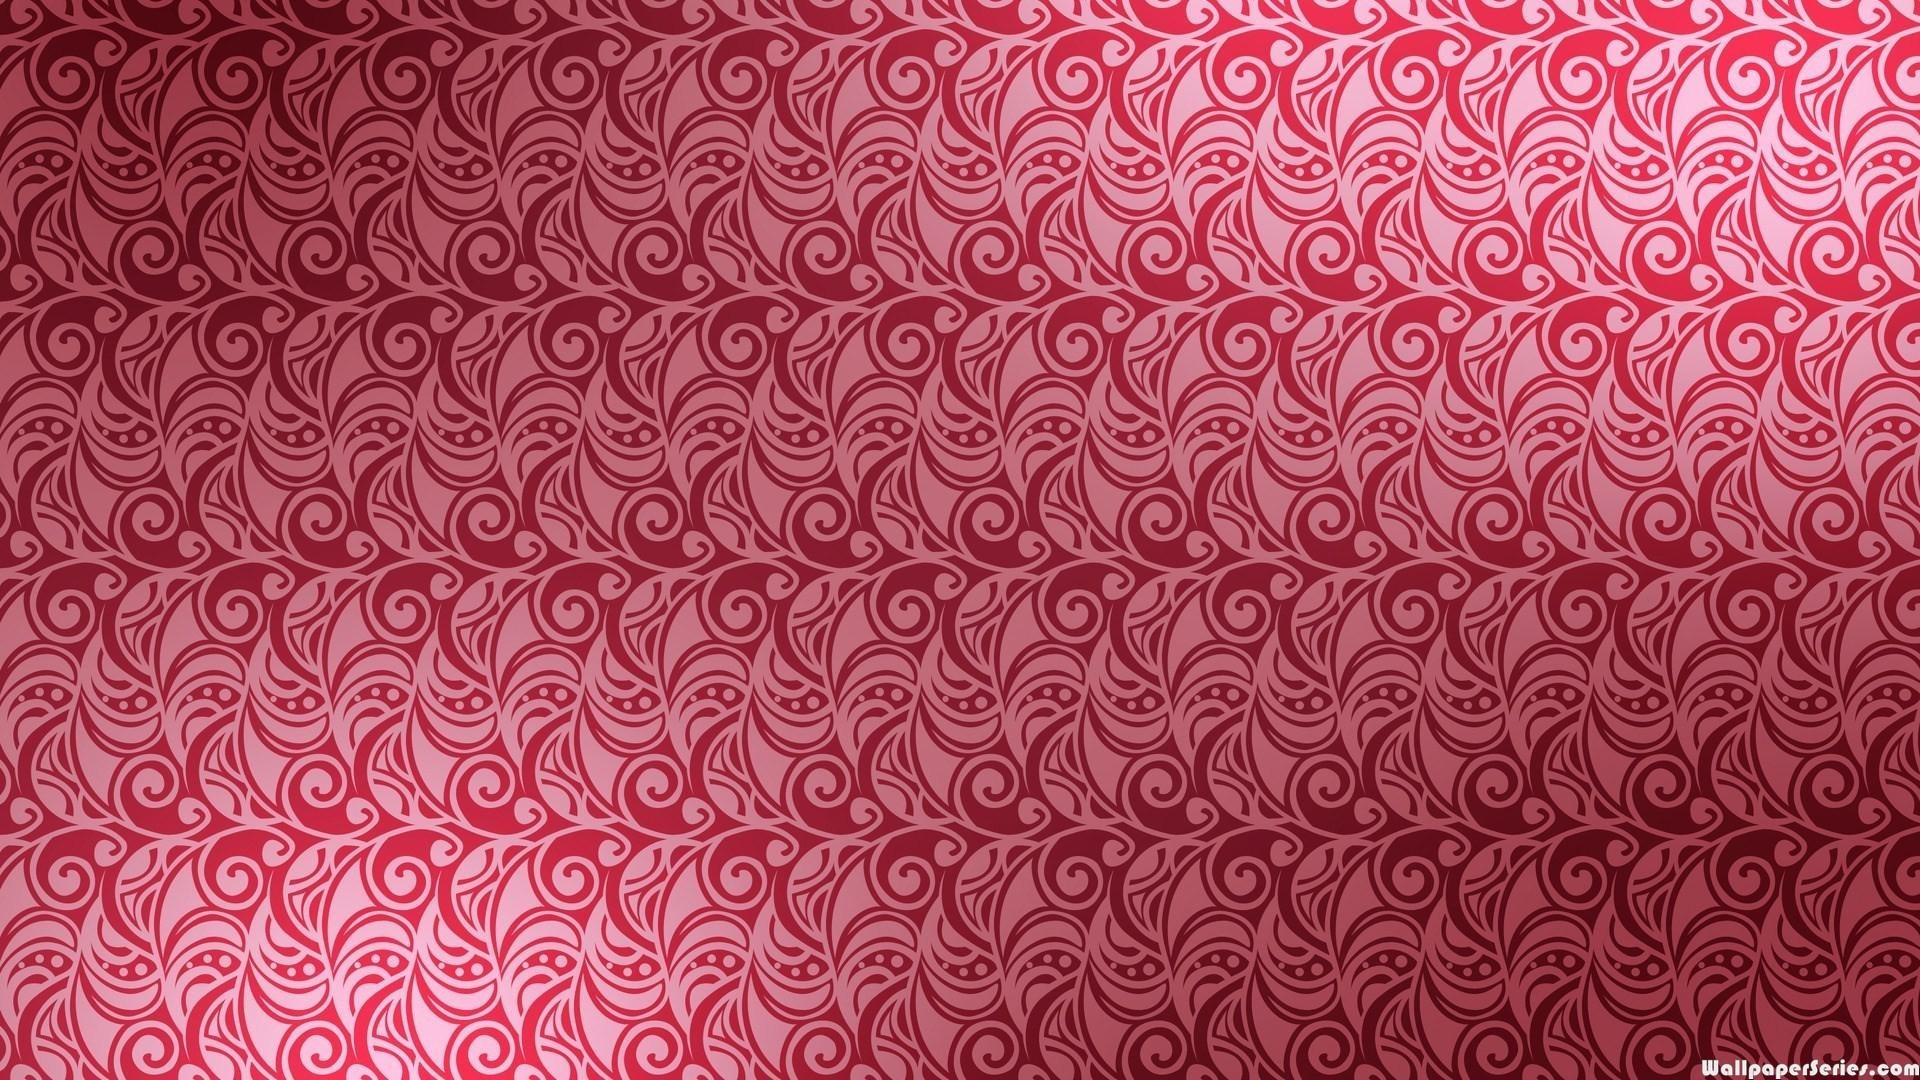 Full Page Pink Zebra Wallpaper (50+ Images